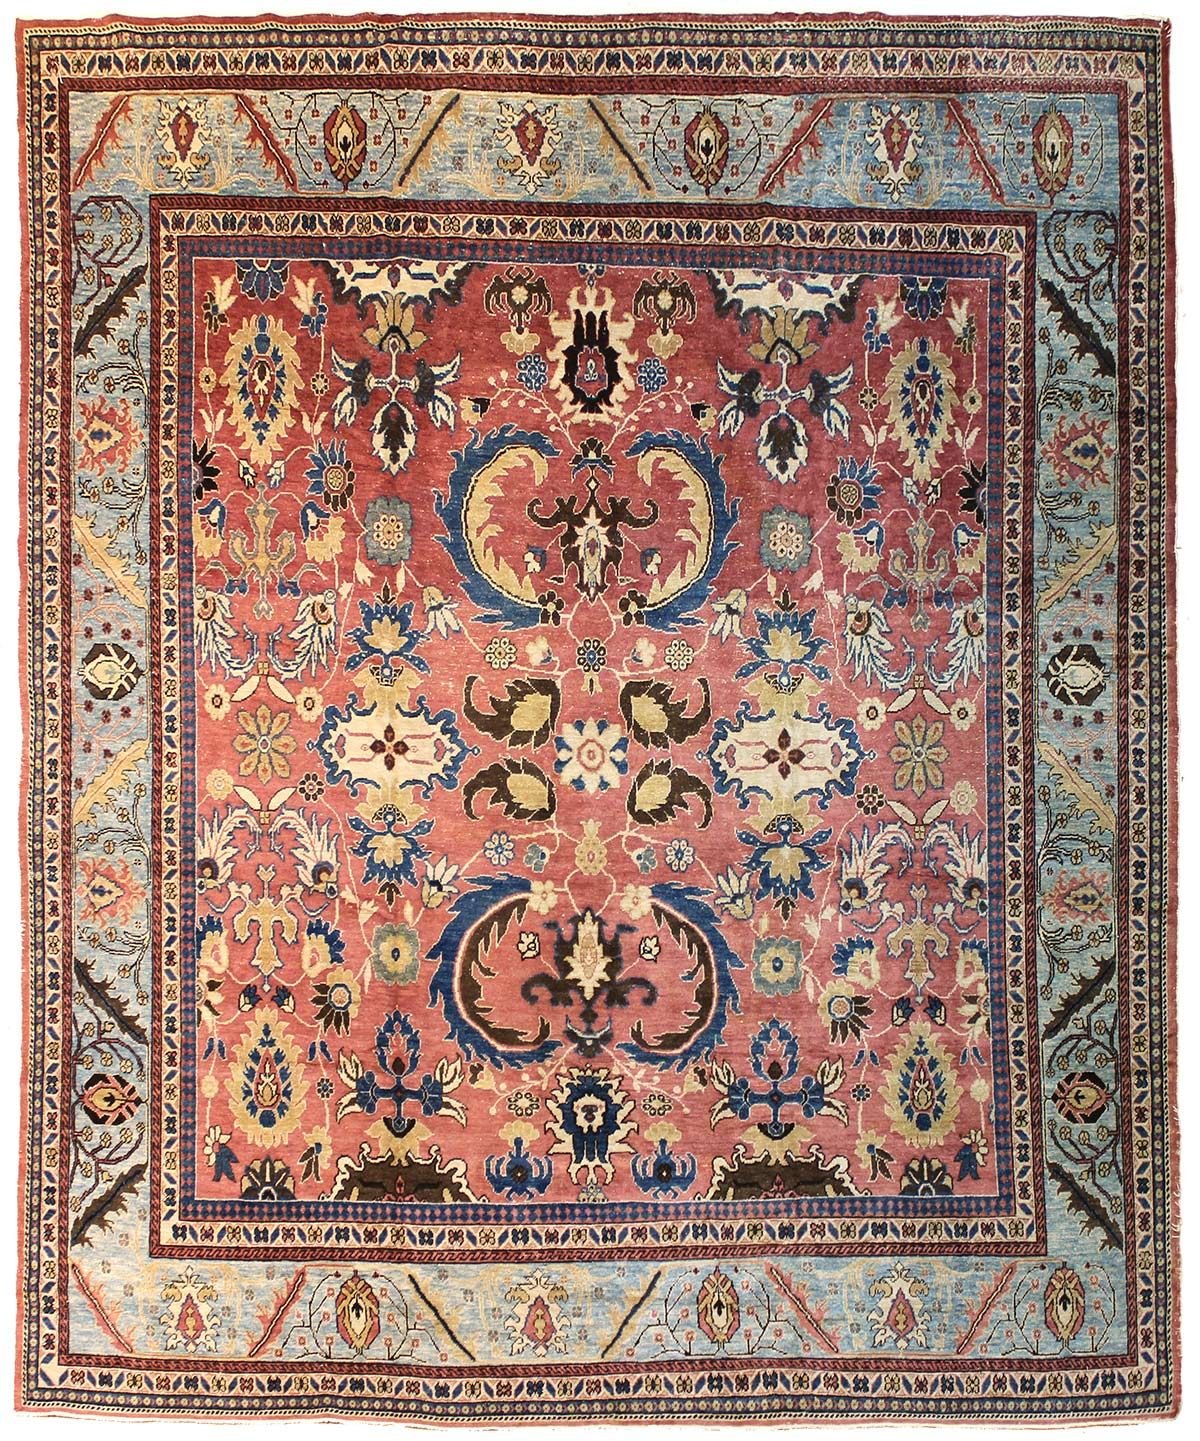 Formal Rugs Gallery Sultanabad Design Rug Hand Knotted In Turkey Size 10 Feet 7 Inch Es X 12 Feet 4 Inch Es